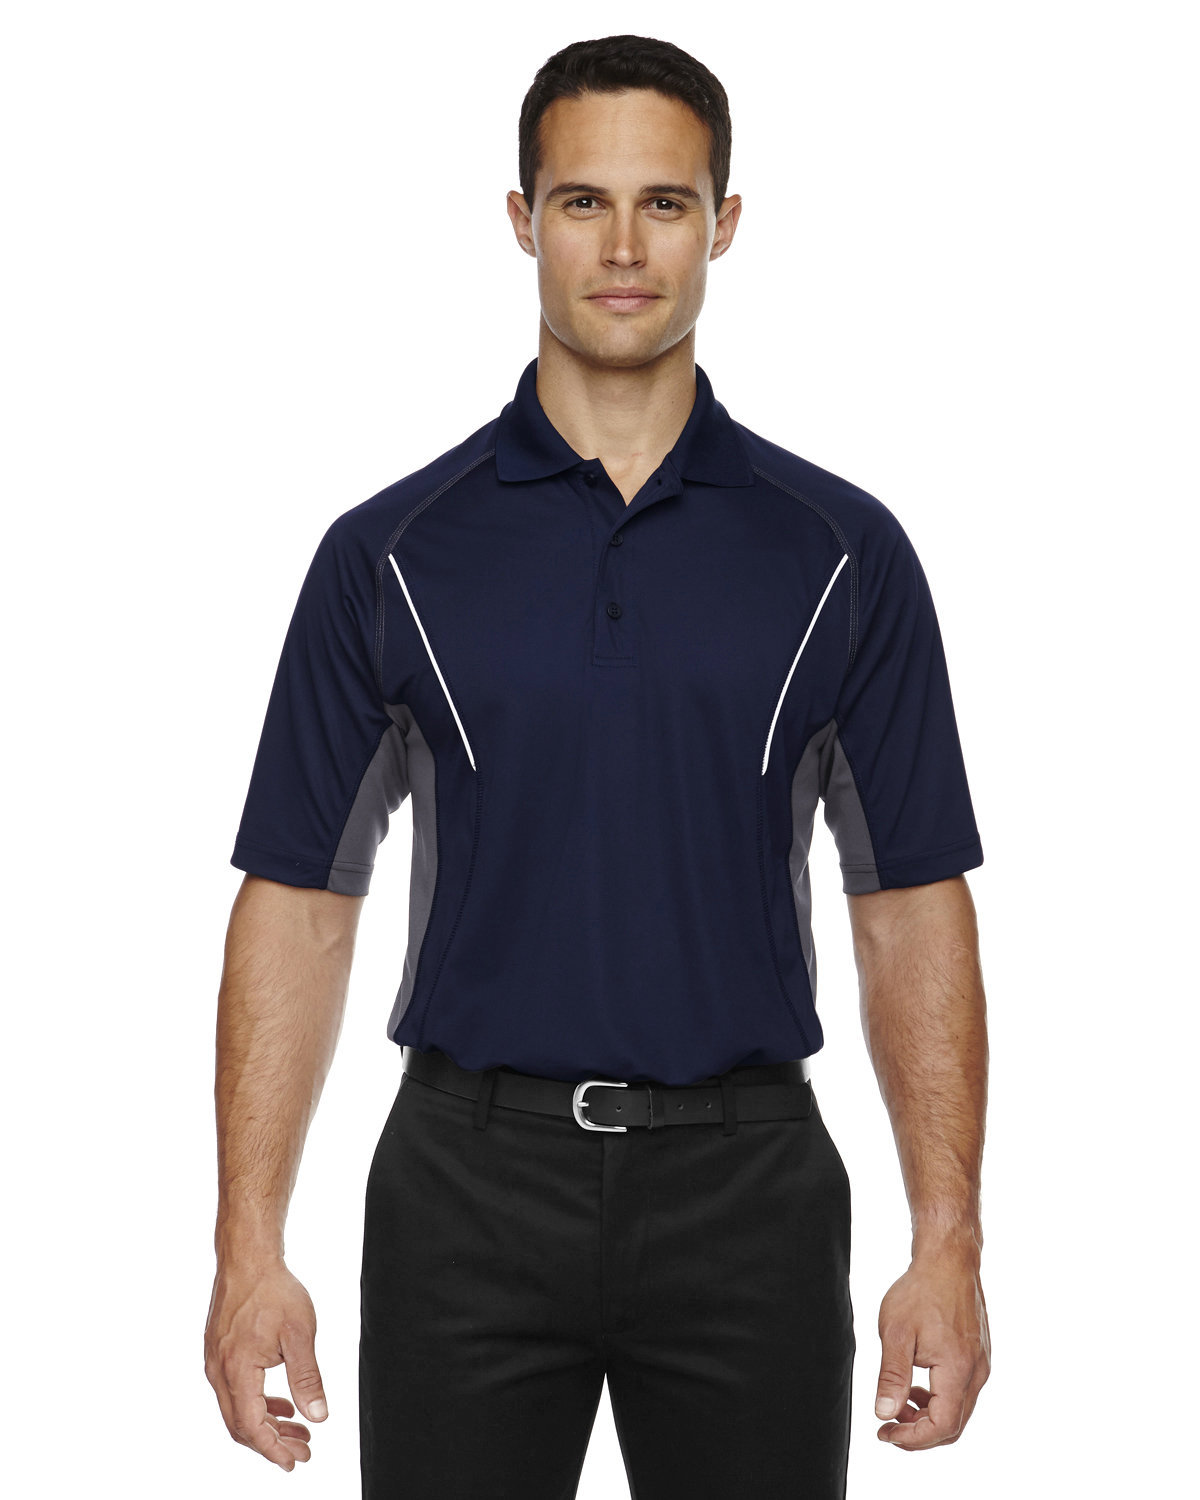 Extreme Men's Eperformance™ Parallel Snag Protection Polo with Piping CLASSIC NAVY